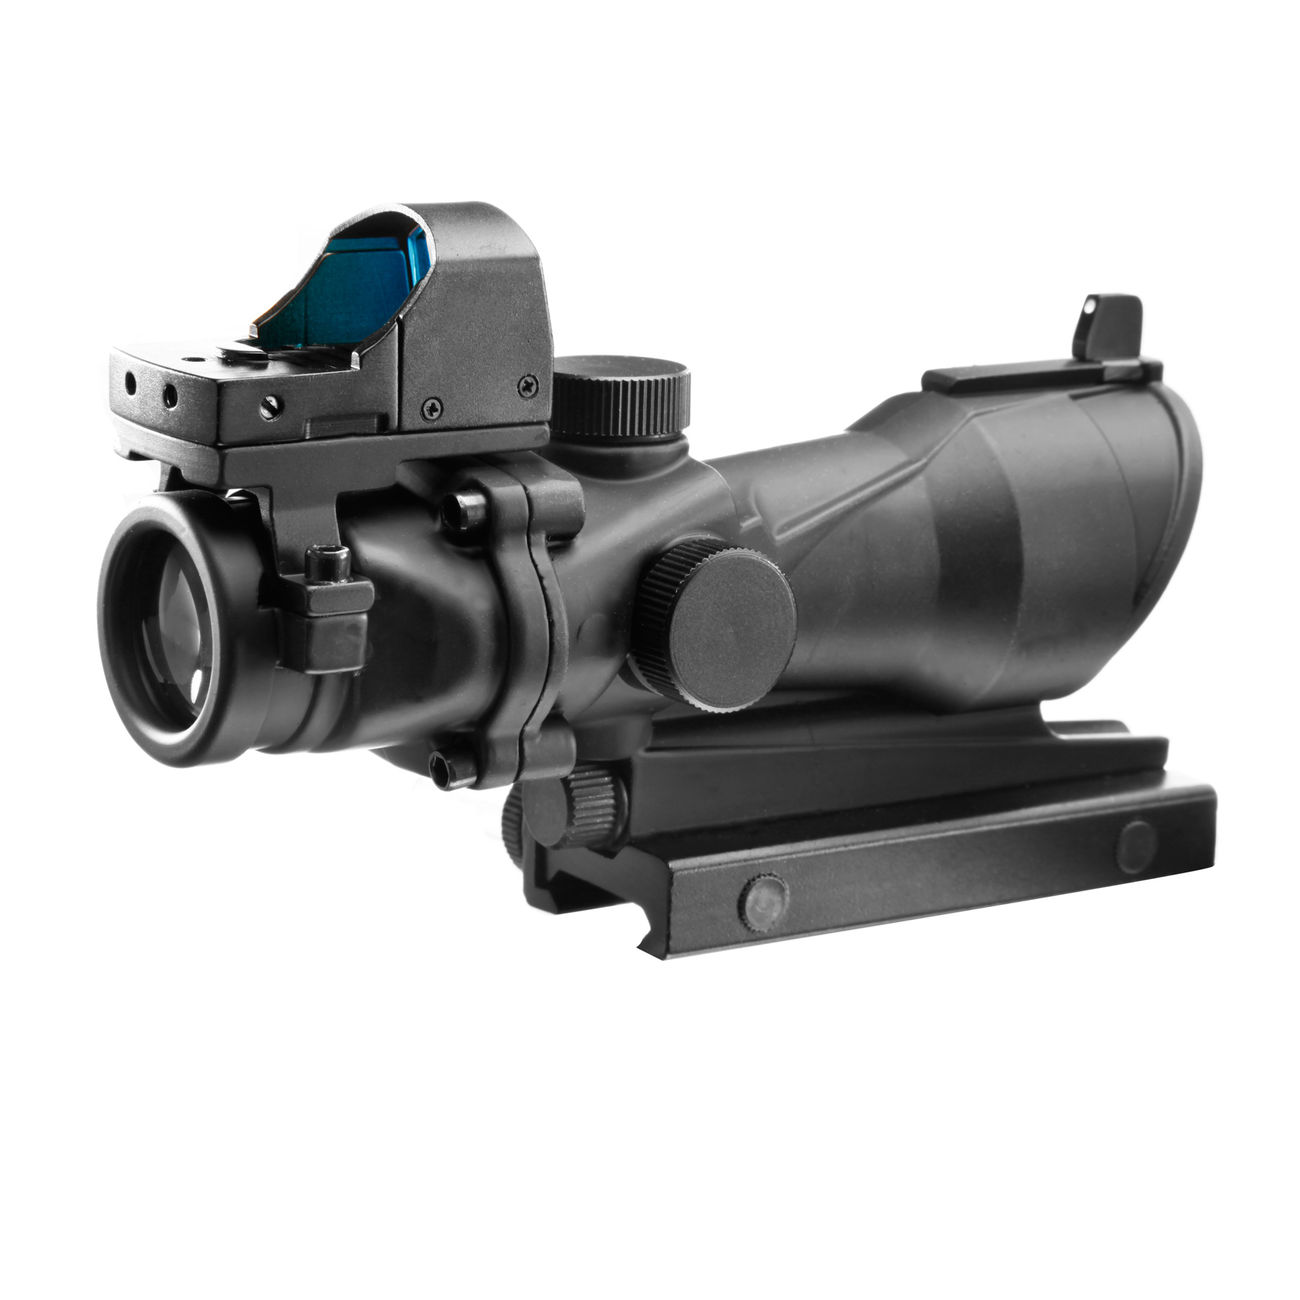 Aim-O TA01 Style Scope 4x32 beleuchtet mit Mini Red Dot schwarz AO 5320-BK 1